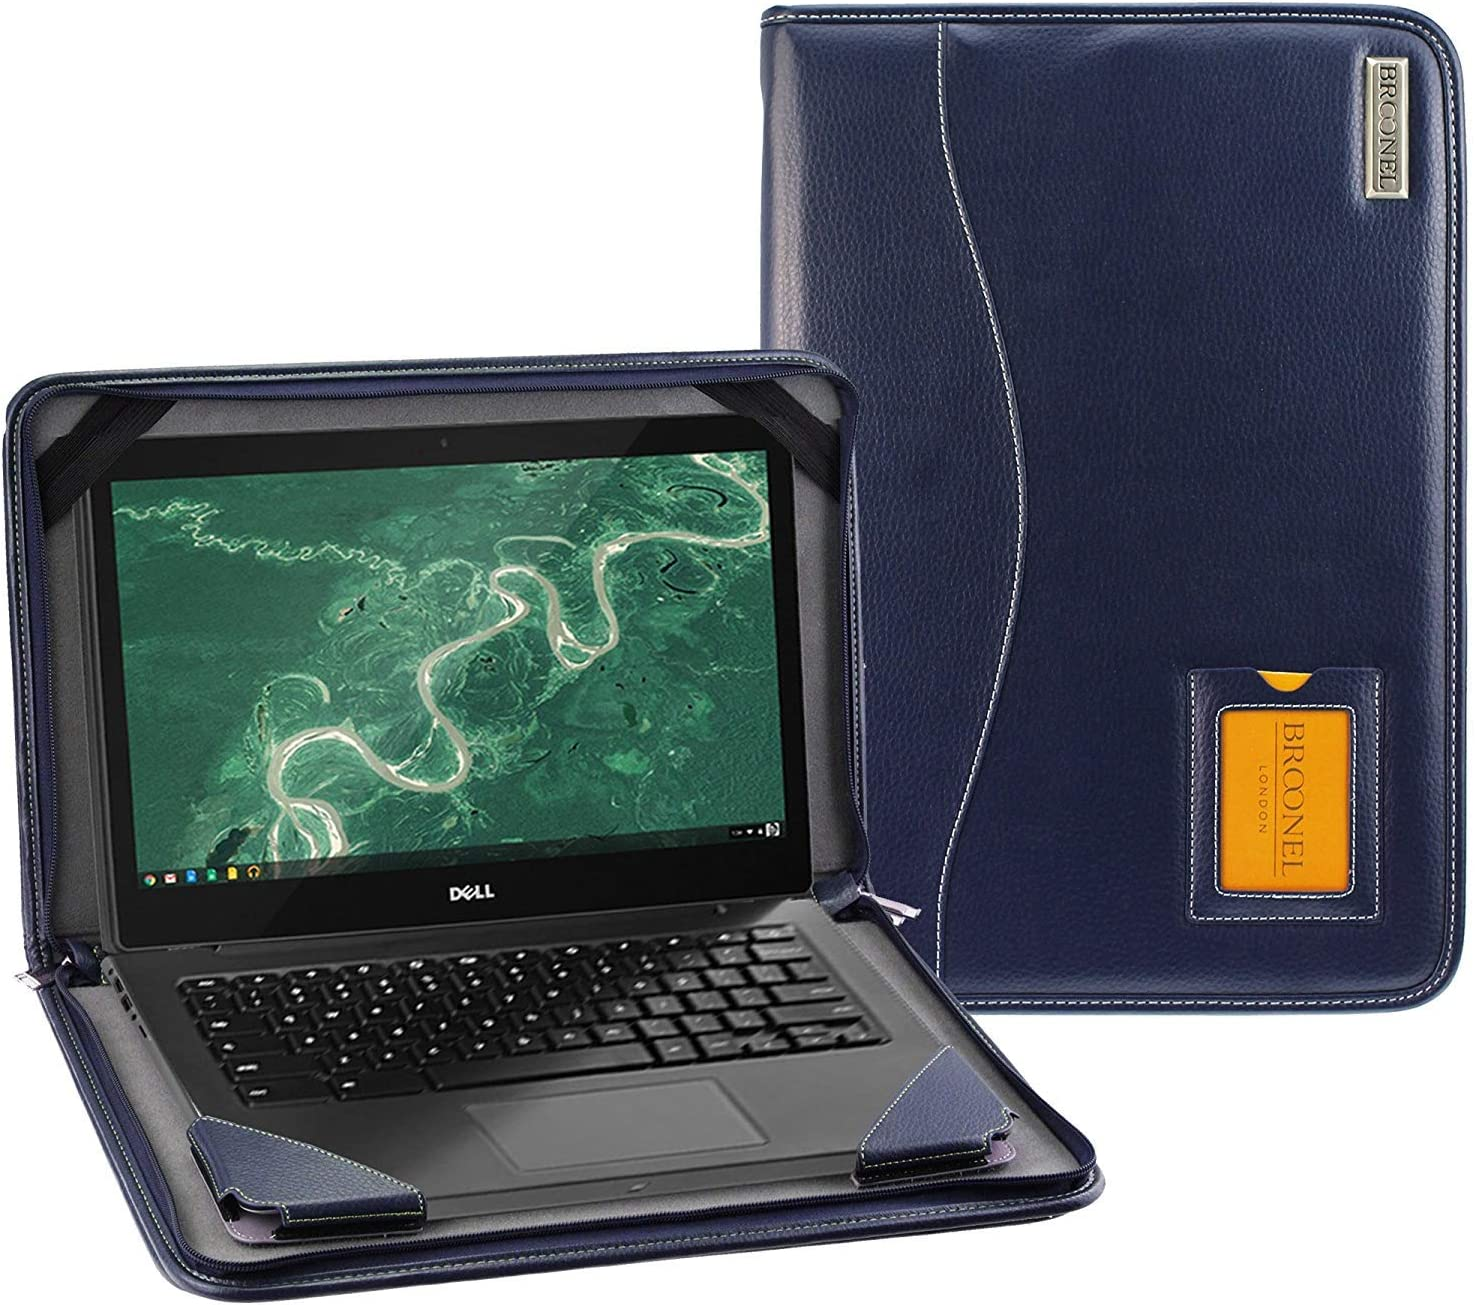 Broonel - Contour Series - Blue Heavy Duty Leather Protective Case Compatible with The Dell Inspiron 14 5000 14 Inch 2-in-1